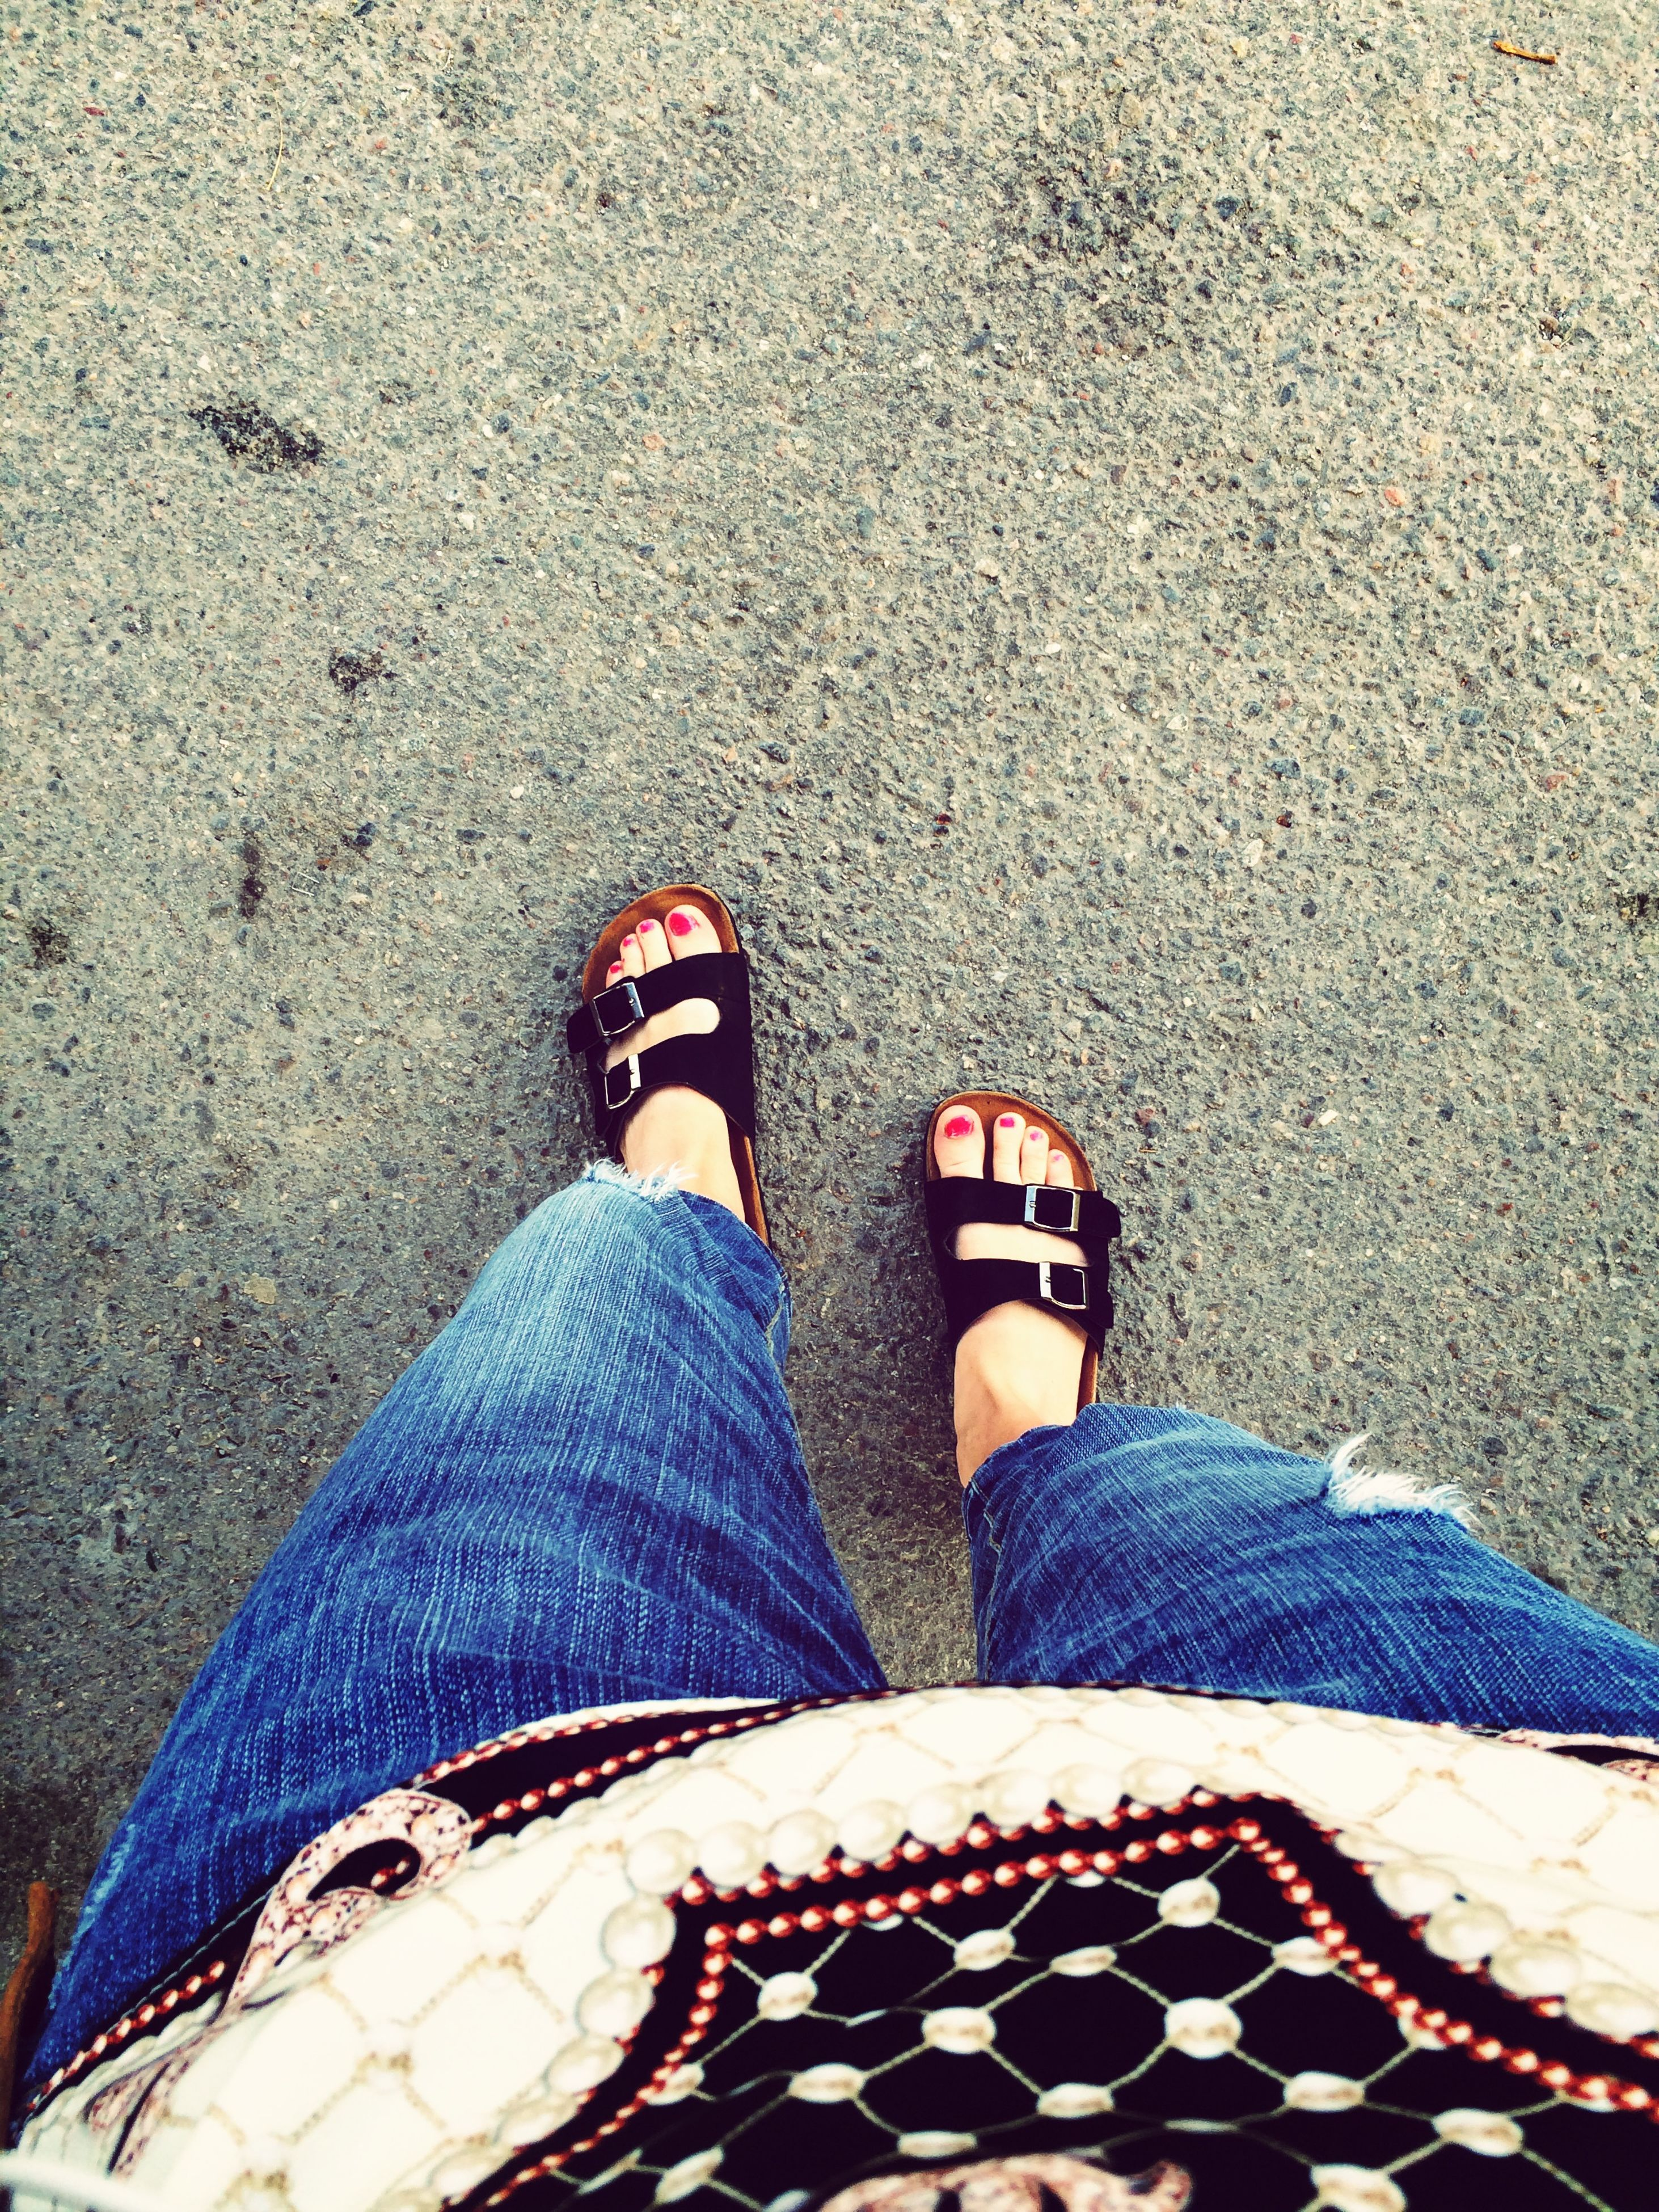 low section, person, shoe, personal perspective, human foot, footwear, high angle view, lifestyles, standing, jeans, leisure activity, relaxation, casual clothing, outdoors, day, street